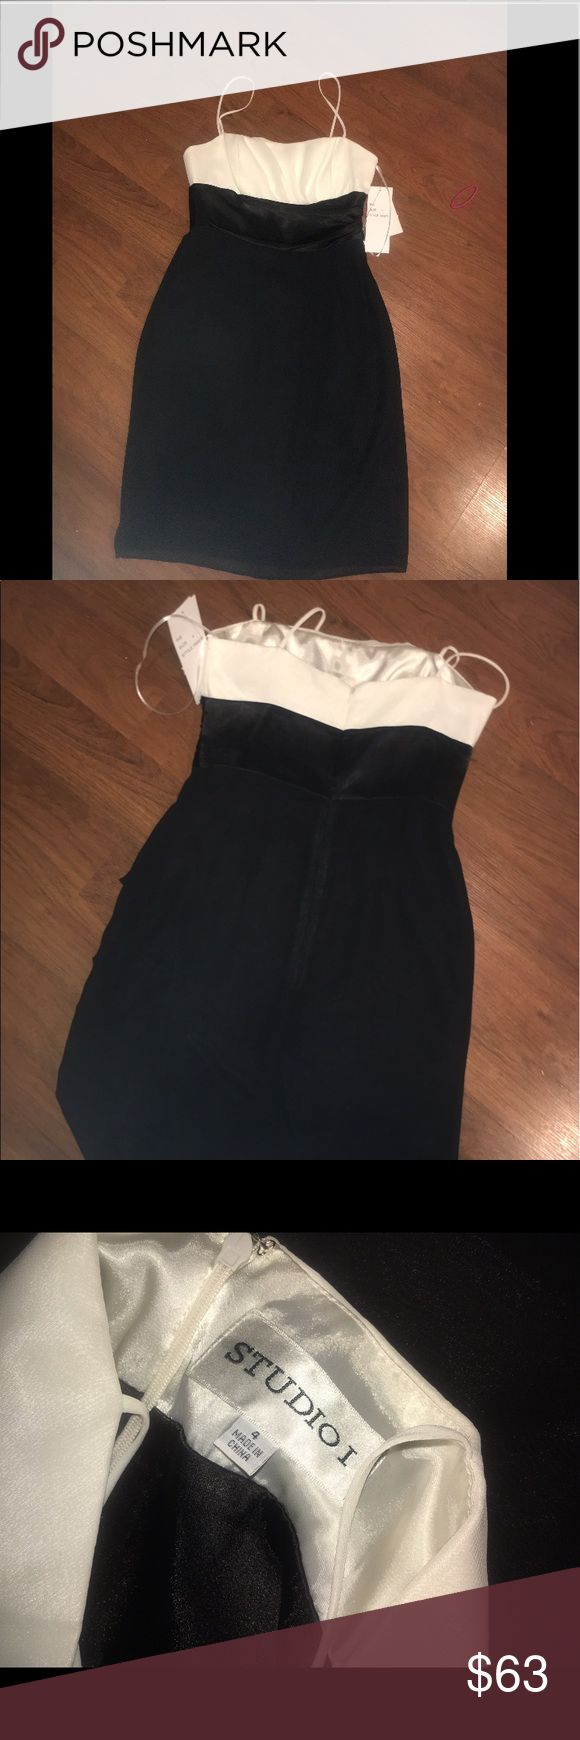 Black and white formal dress NEW WITH TAGS STUDIO I Dresses